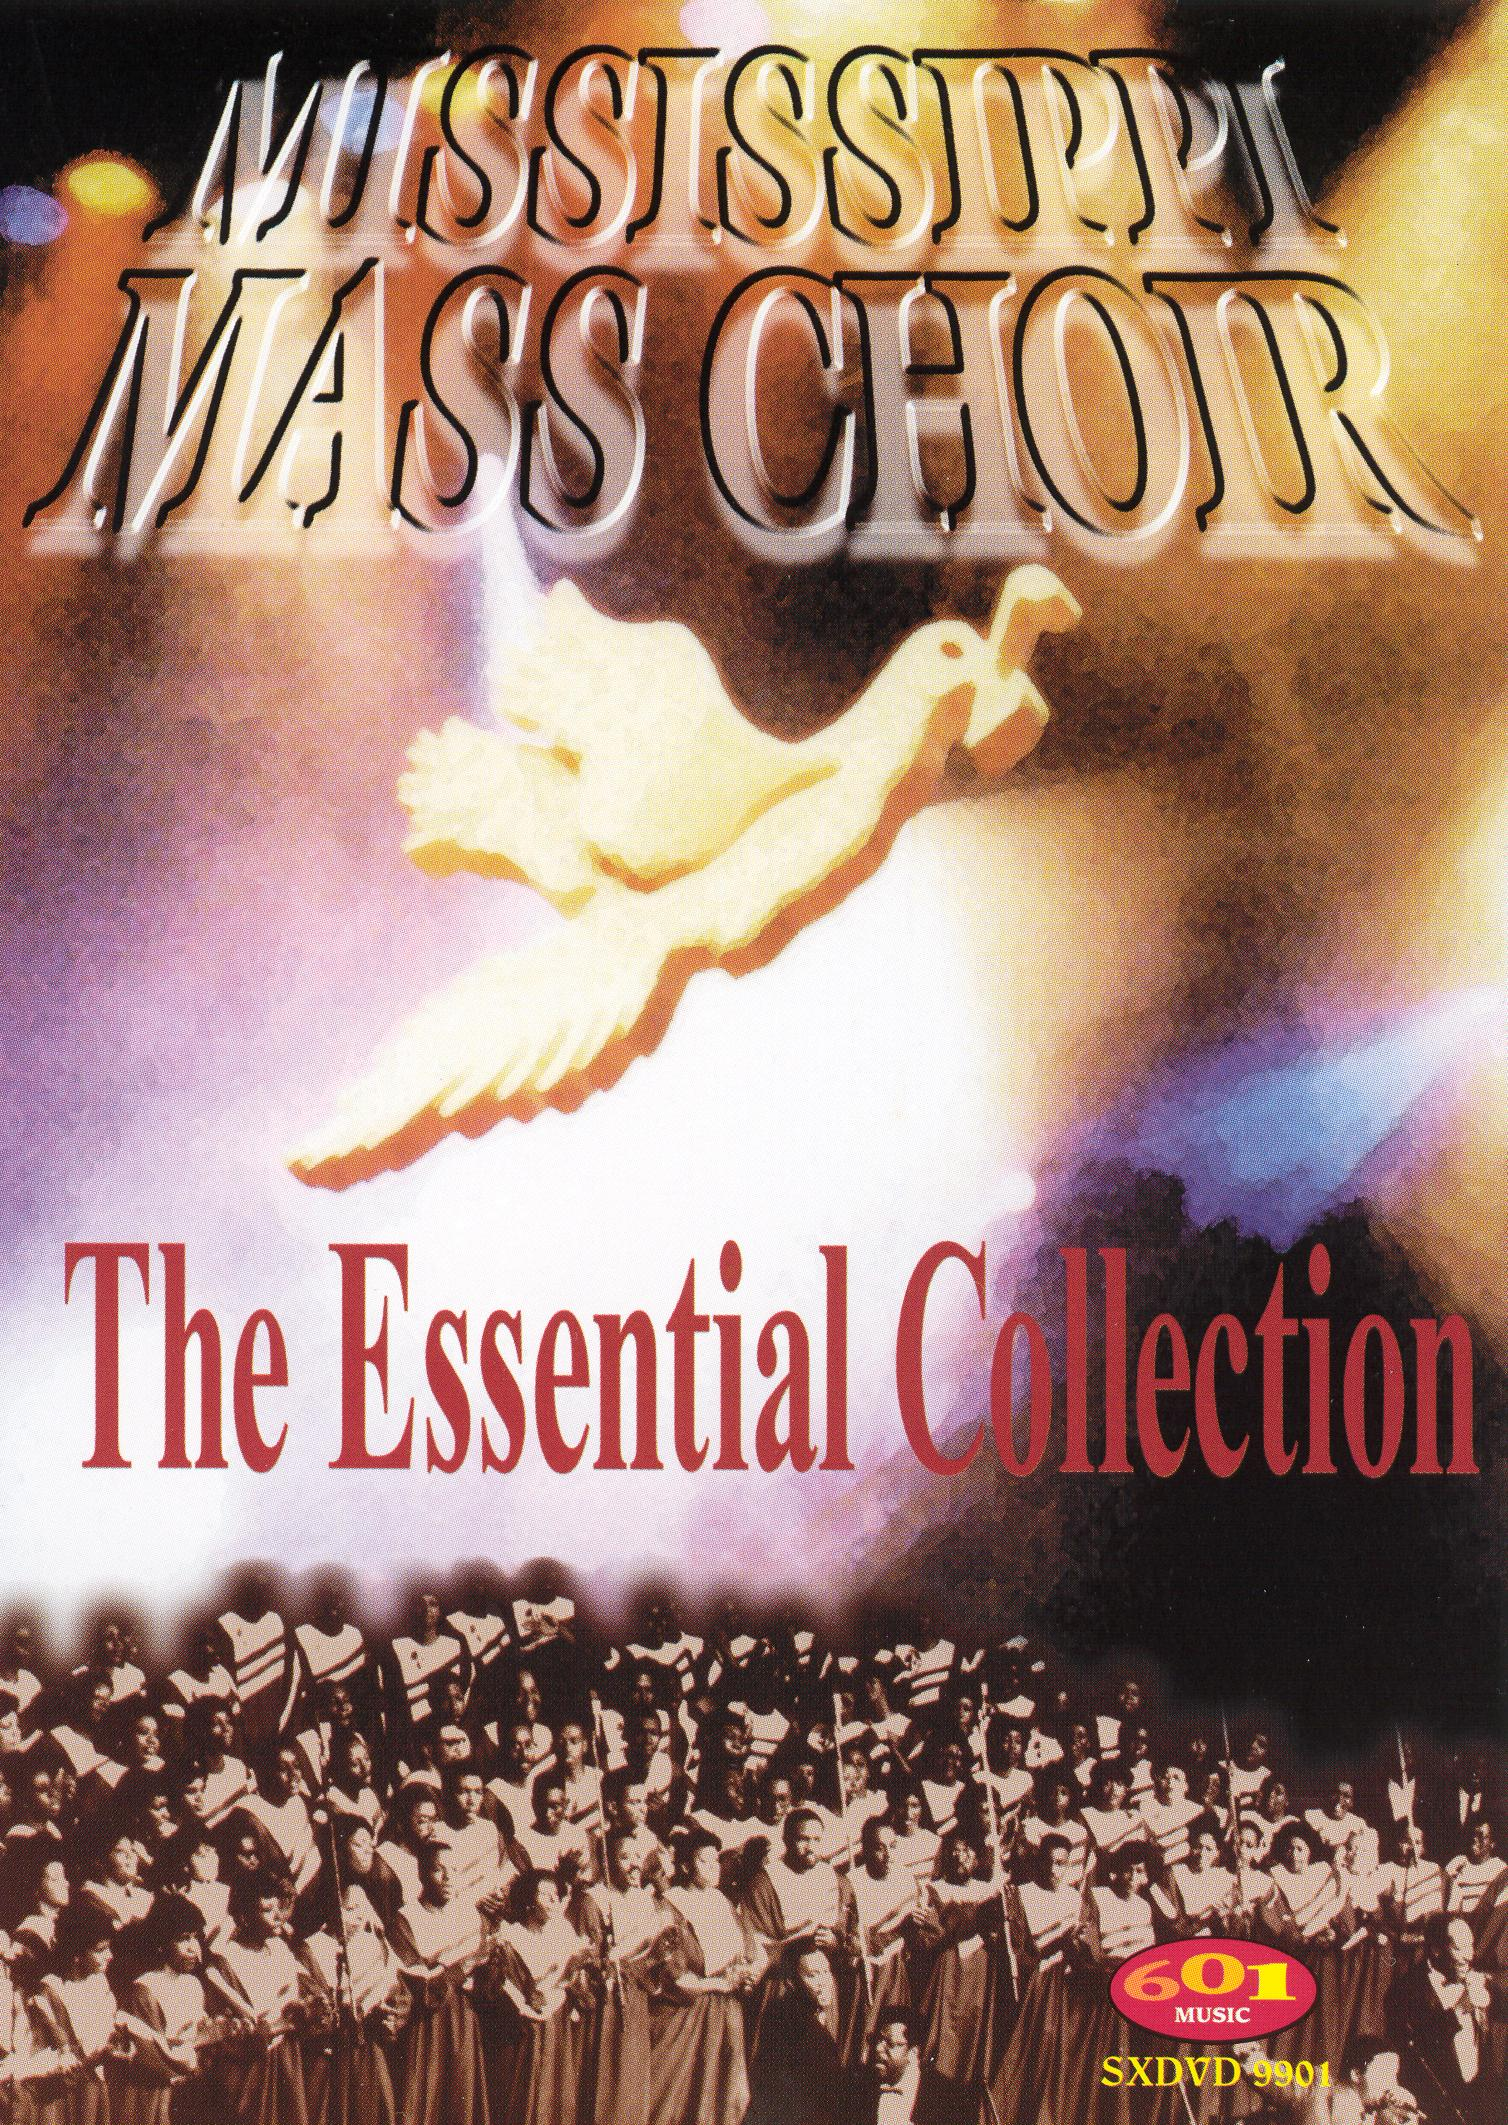 Mississippi Mass Choir: The Essential Collection